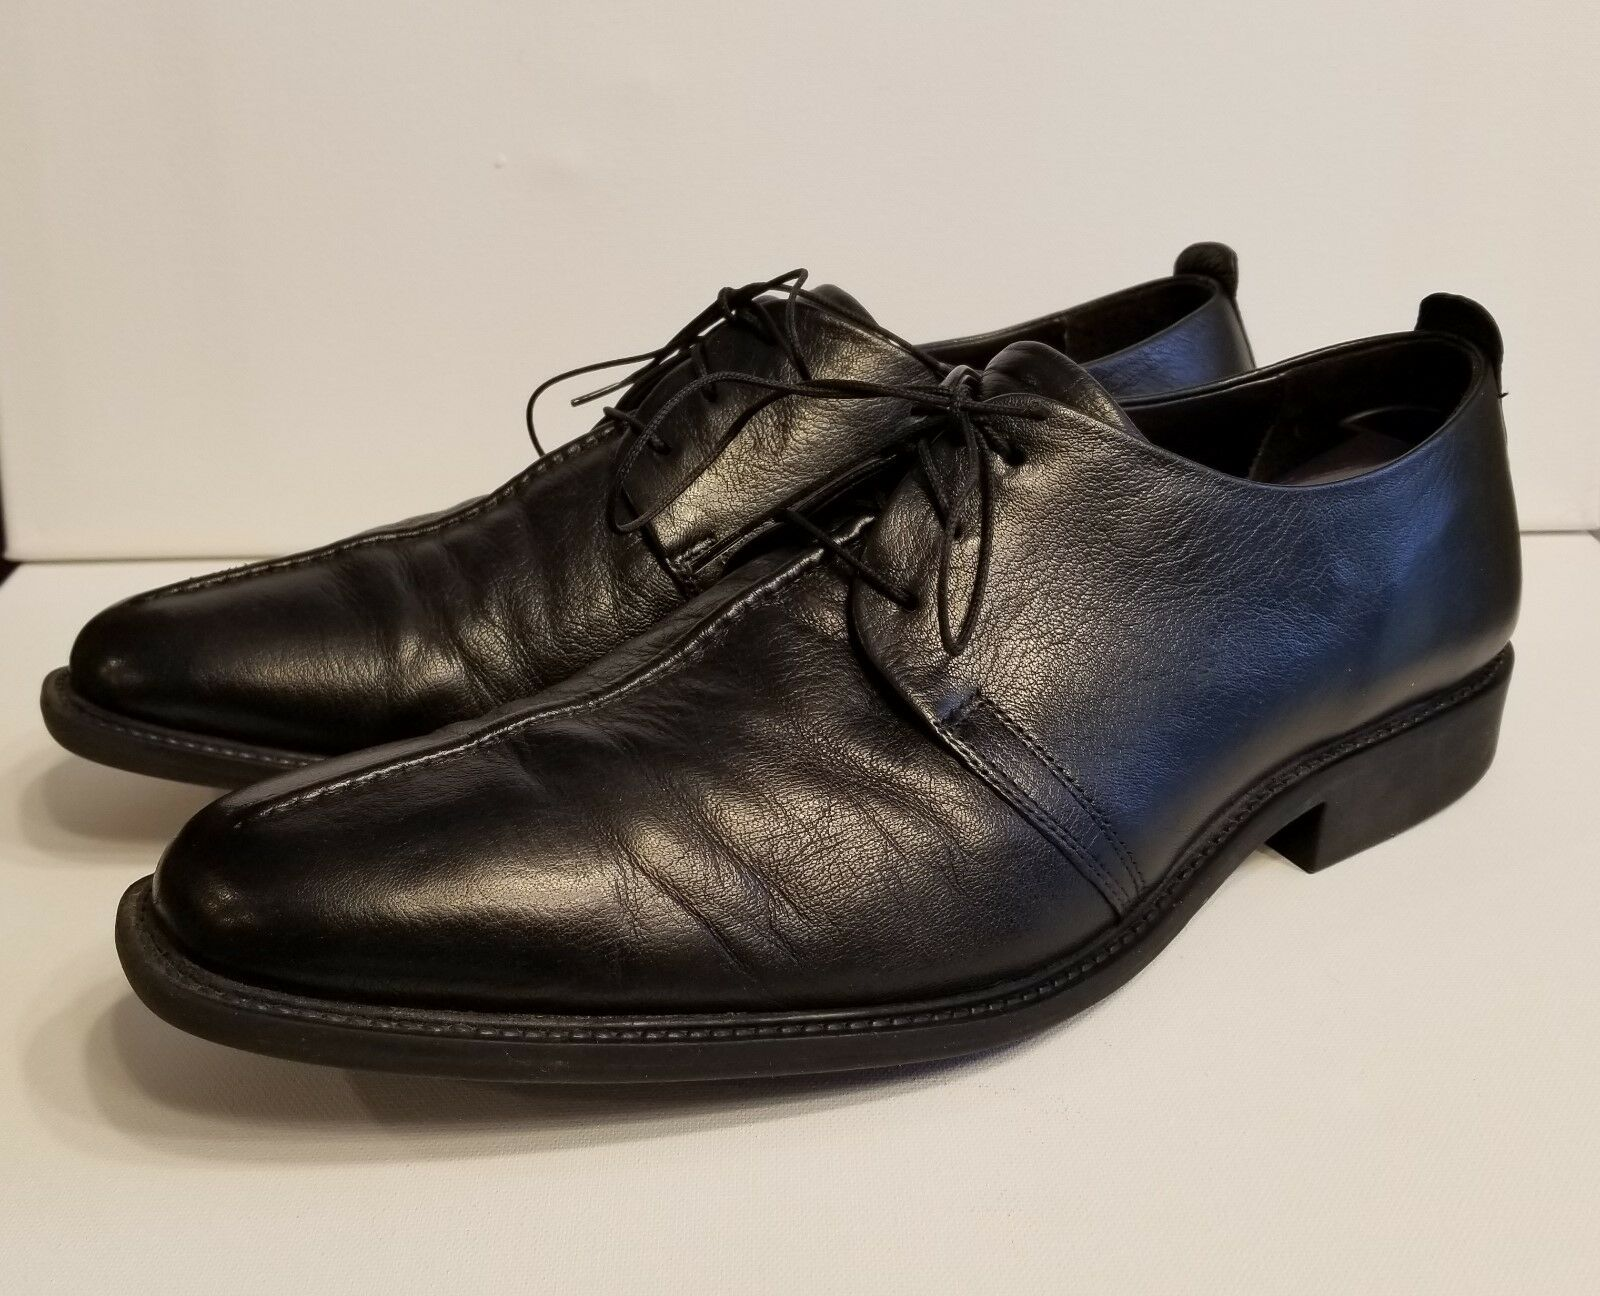 Cole Haan Cain Center Seam Dress Formal Split toe Oxfords Men C12541 - US 10.5M